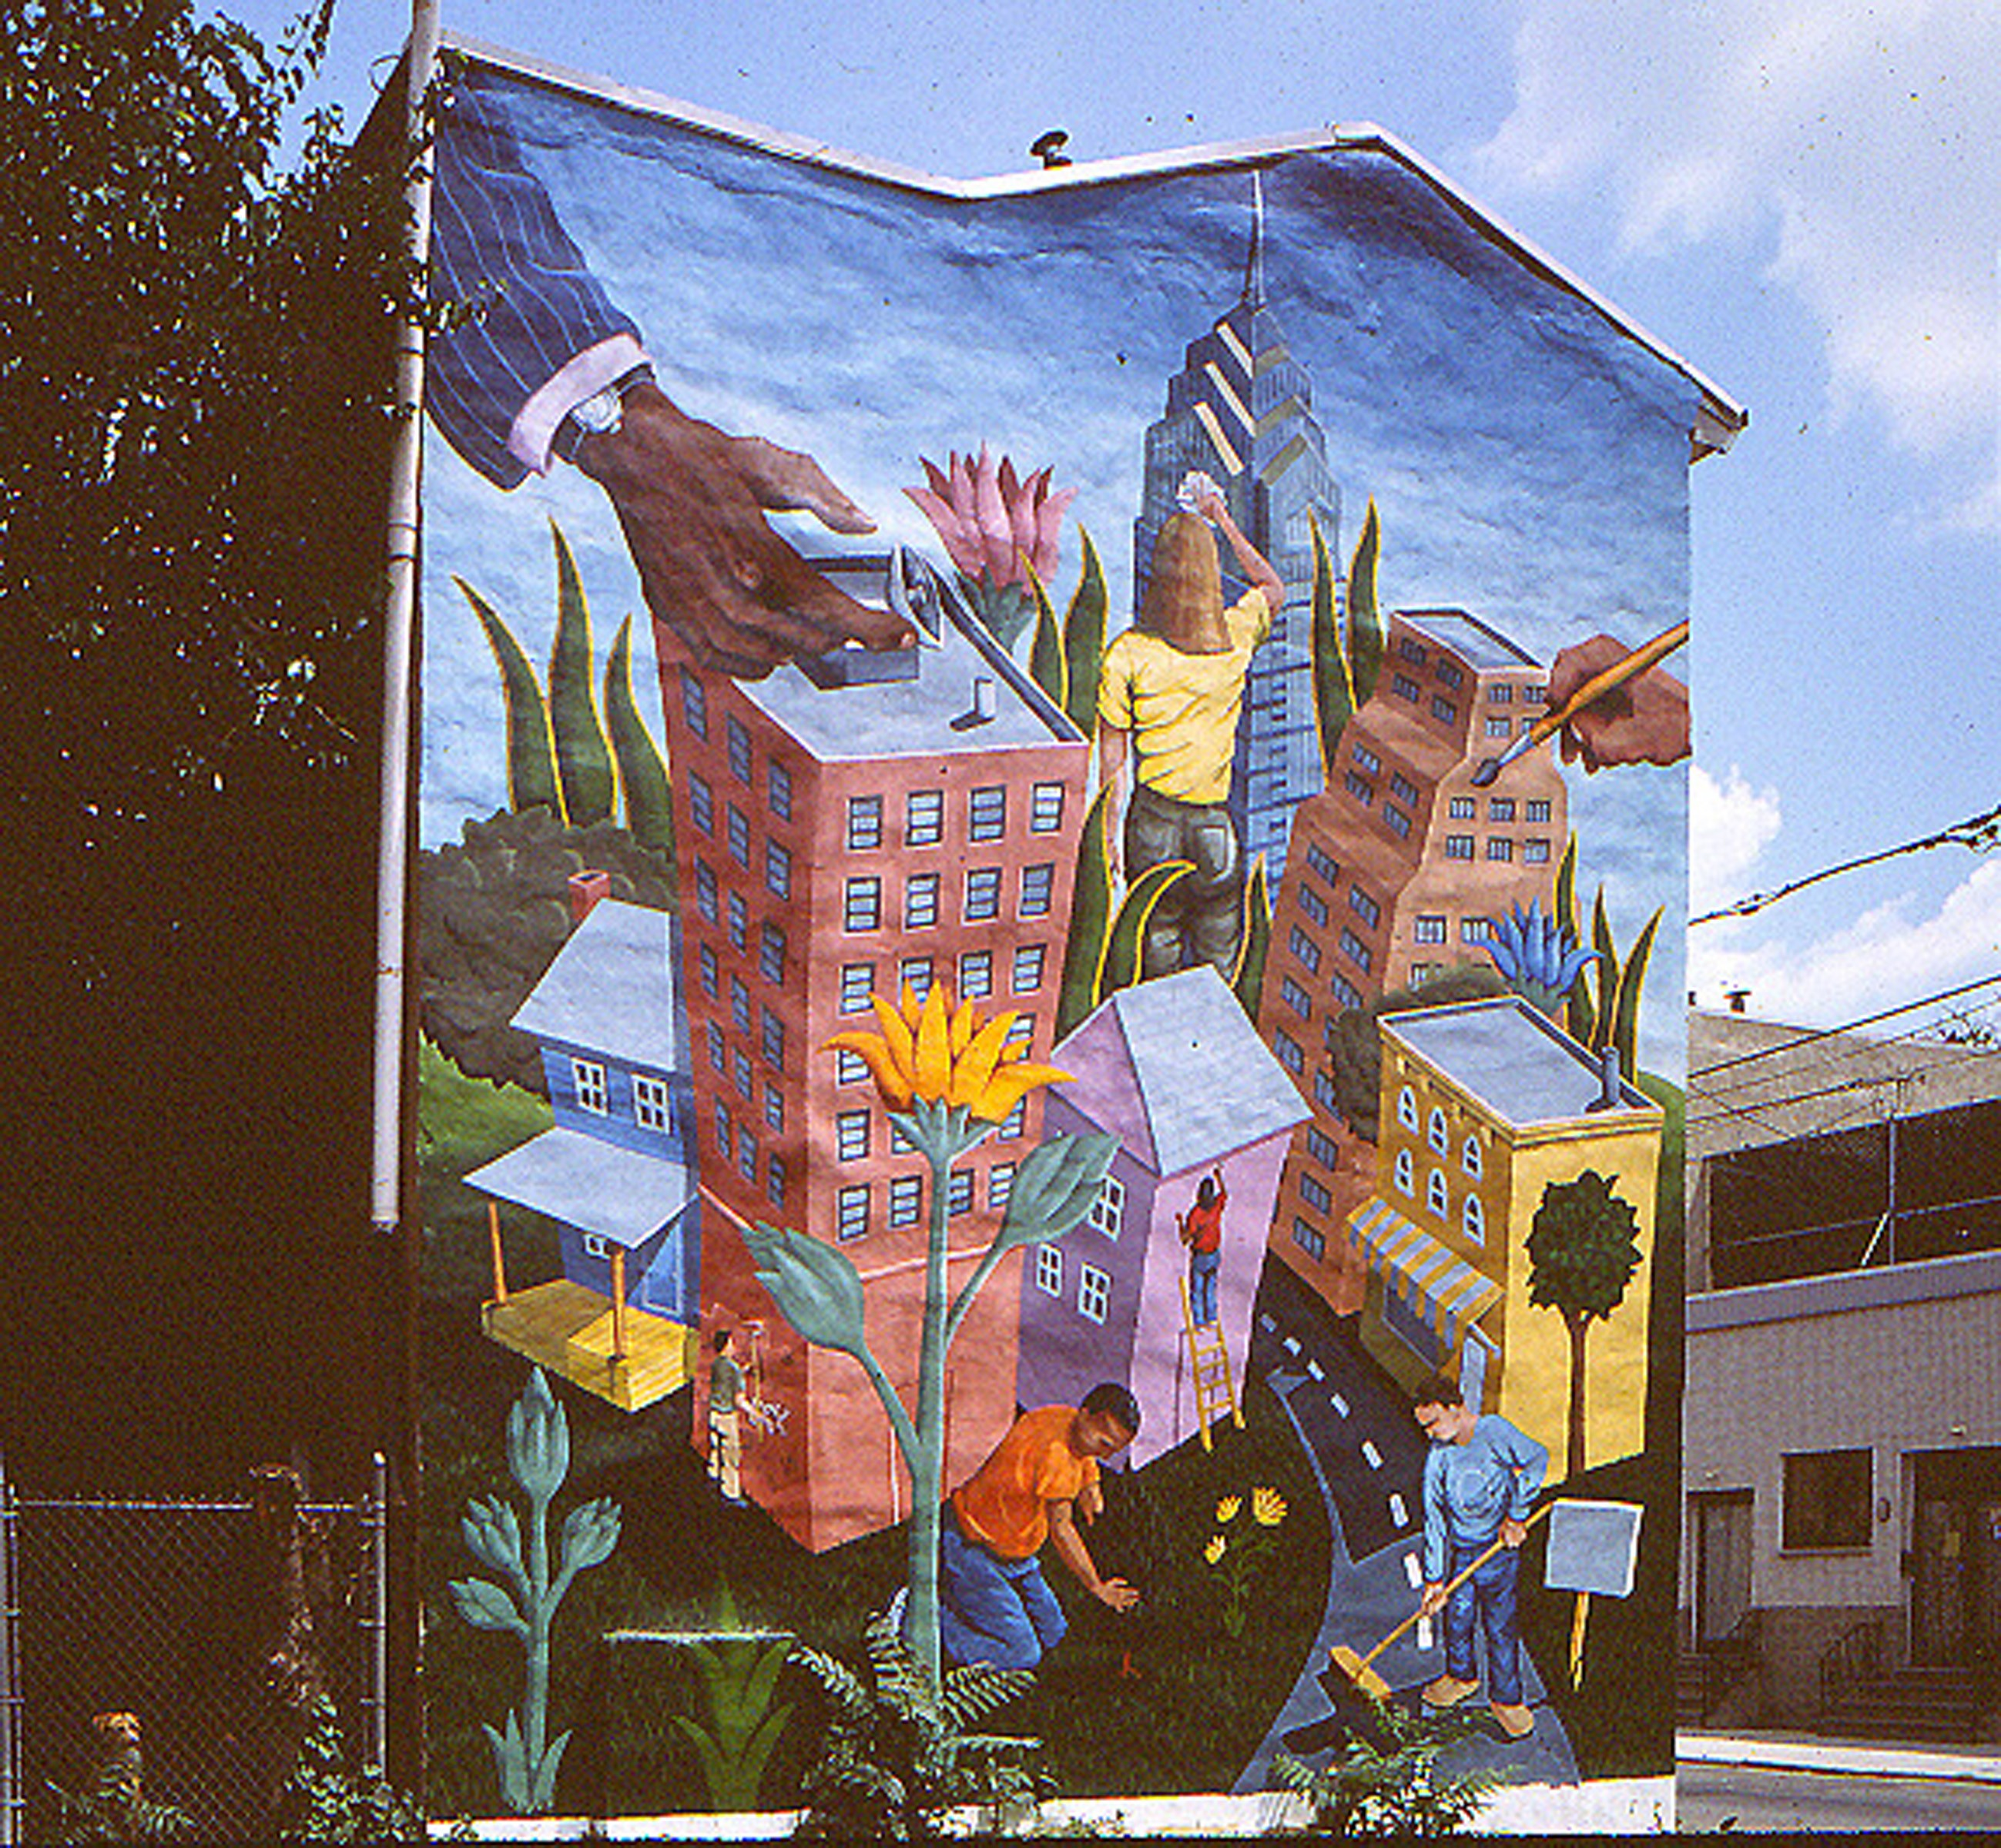 Helping hands encyclopedia of greater philadelphia for City of philadelphia mural arts program